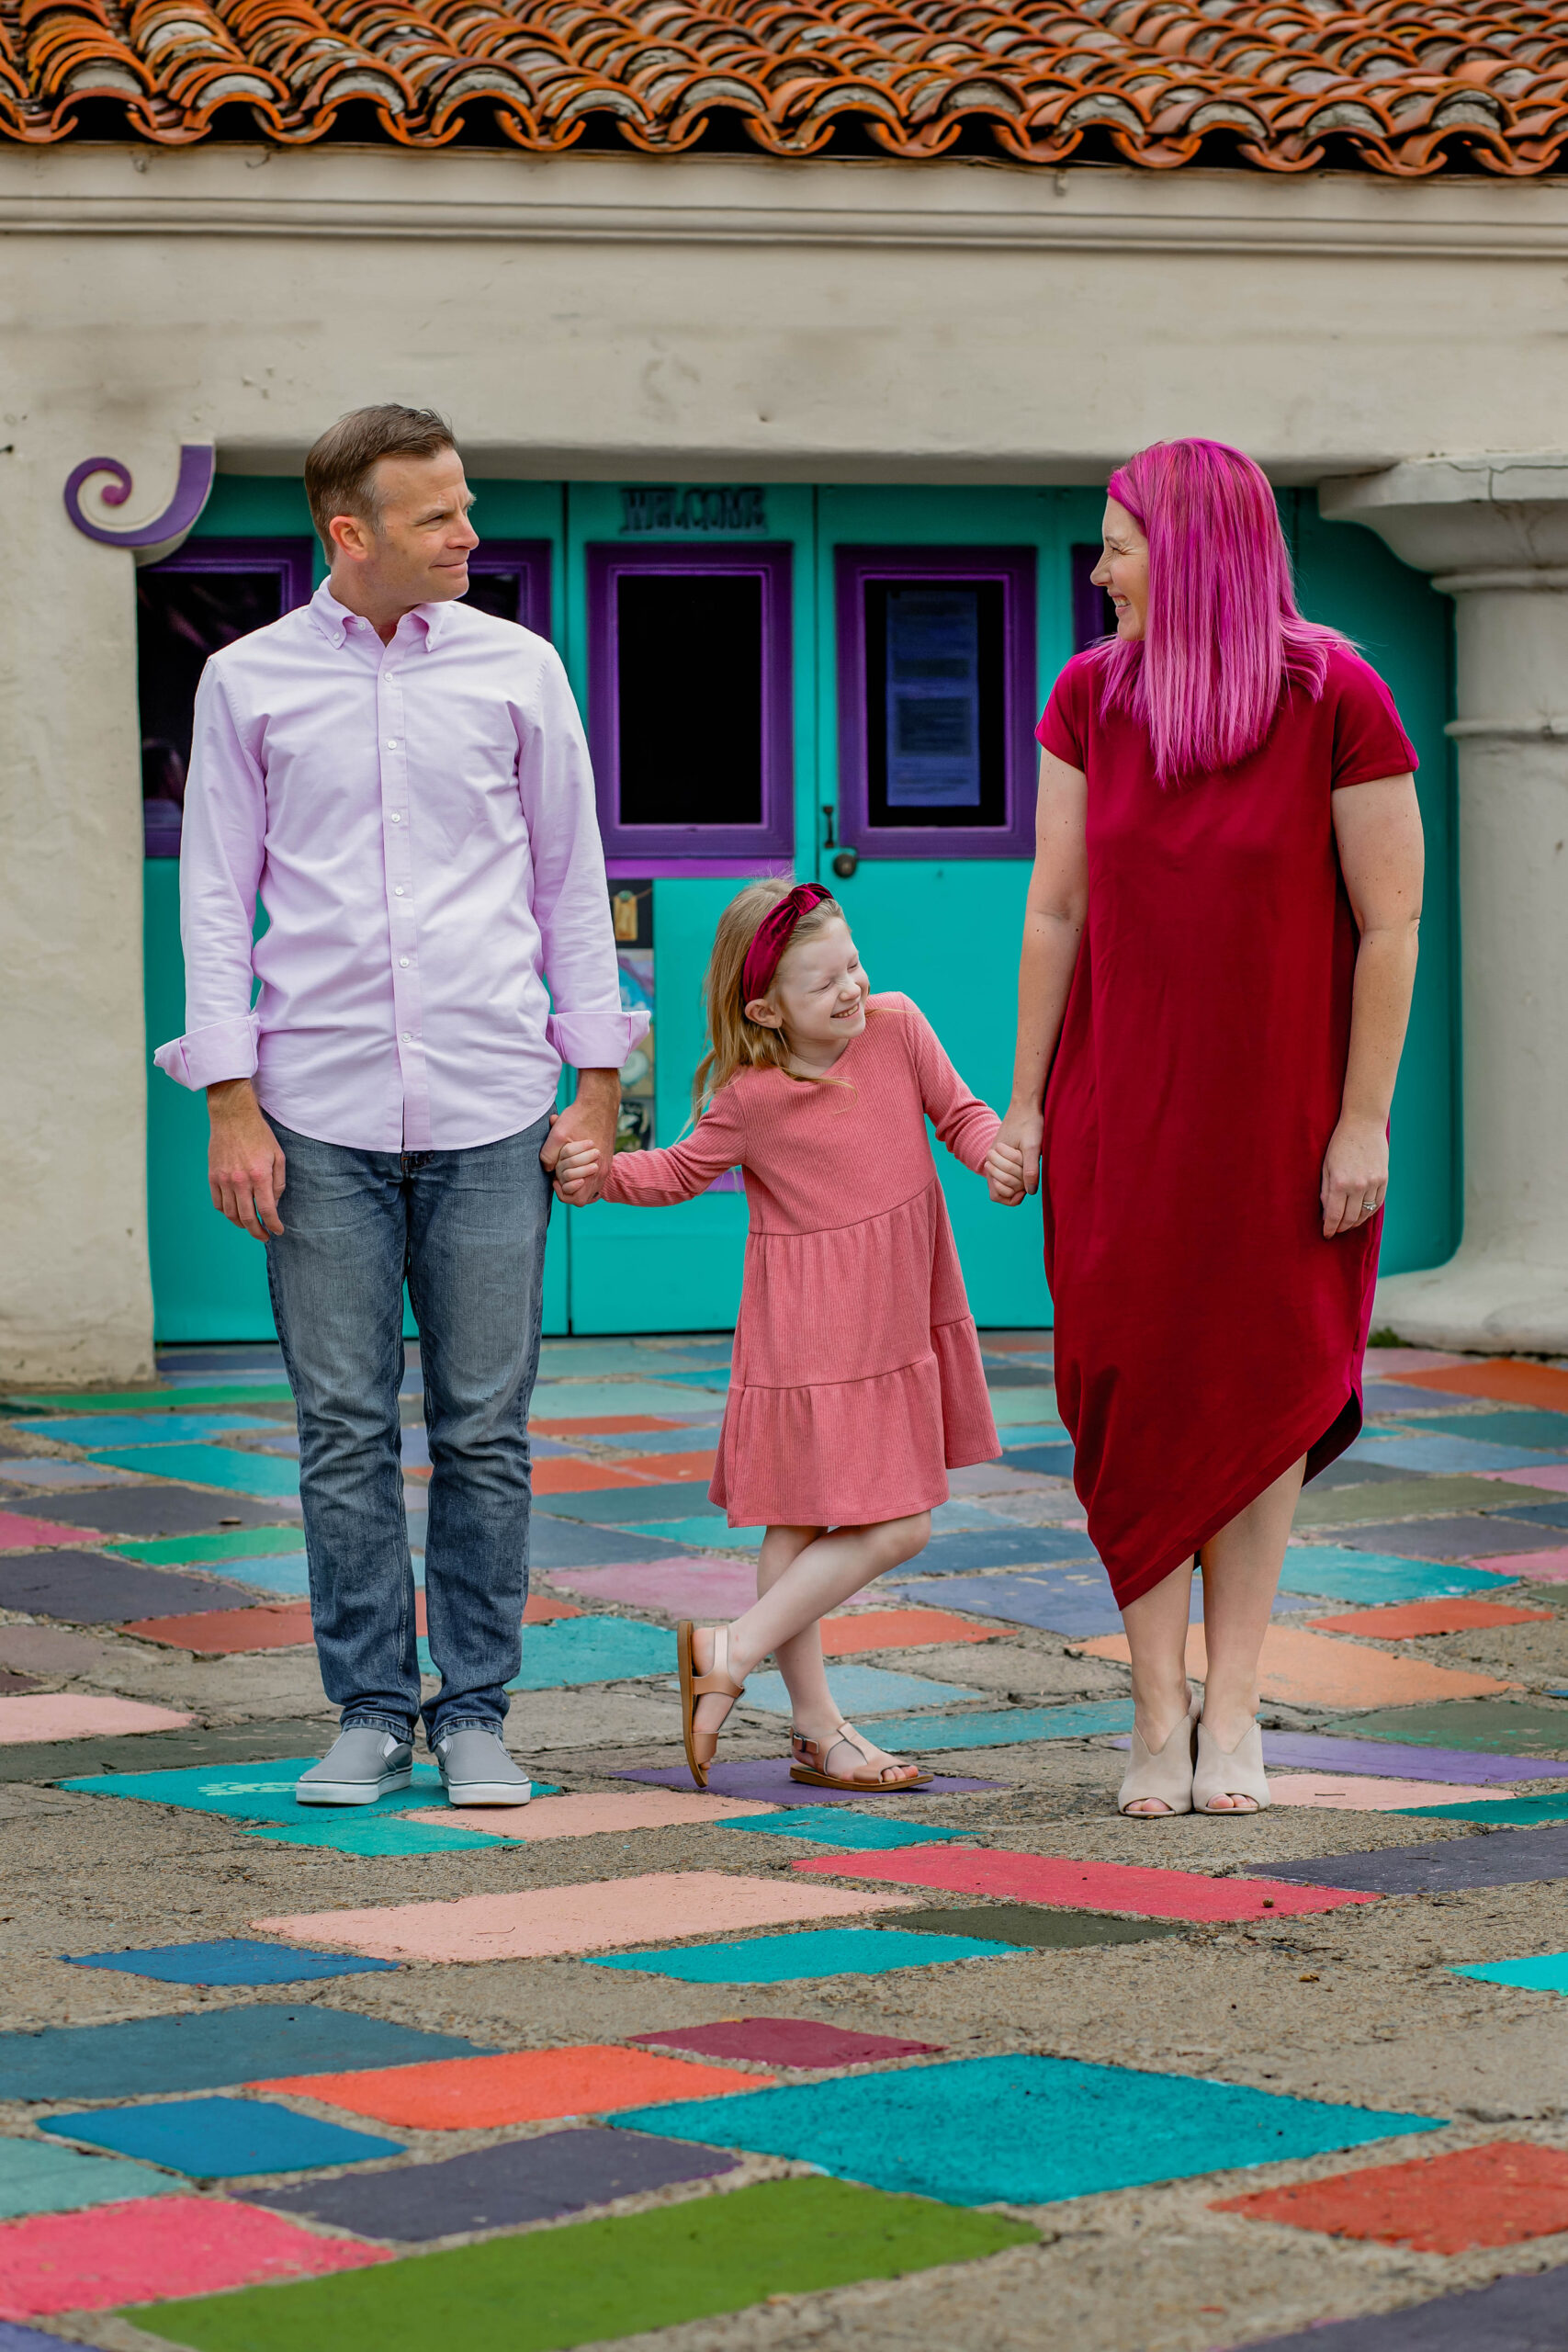 Spring Family Pictures: The Ultimate Guide to picking outfits, locations and making them FUN!